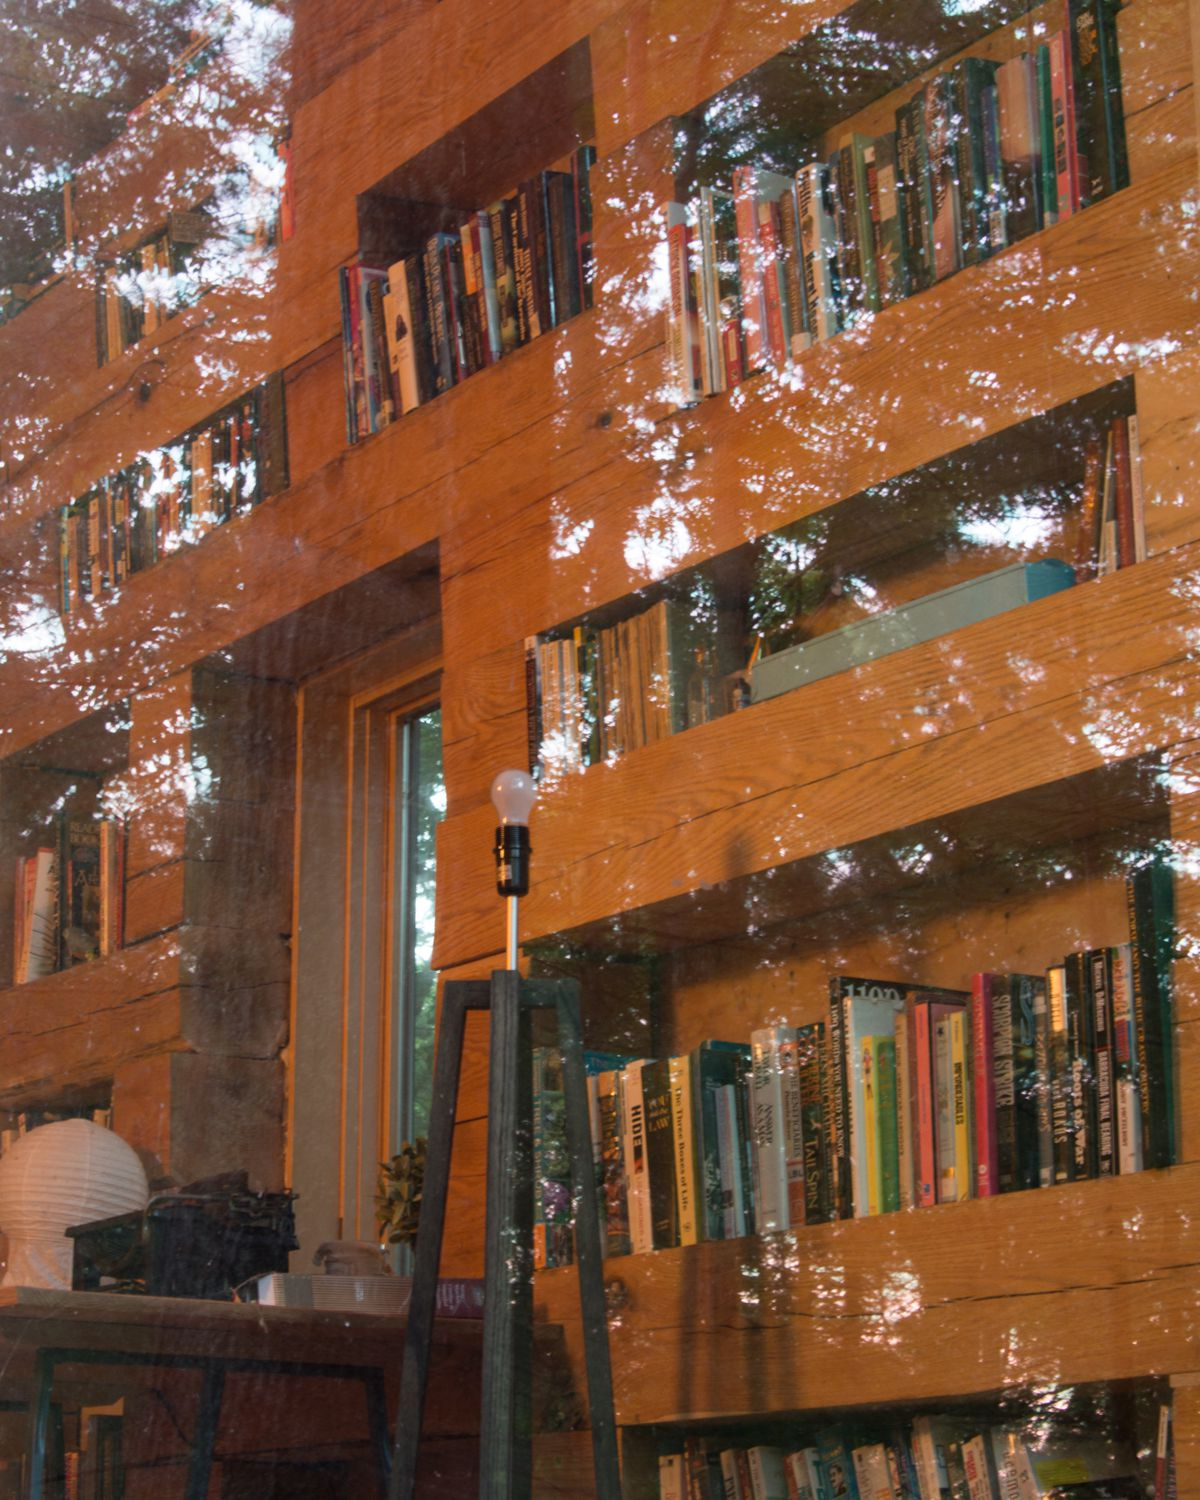 Looking through a big picture window, you can see bookshelves crafted with large, square beams (they are roughly 8 x 8) made from light-colored oak wood.